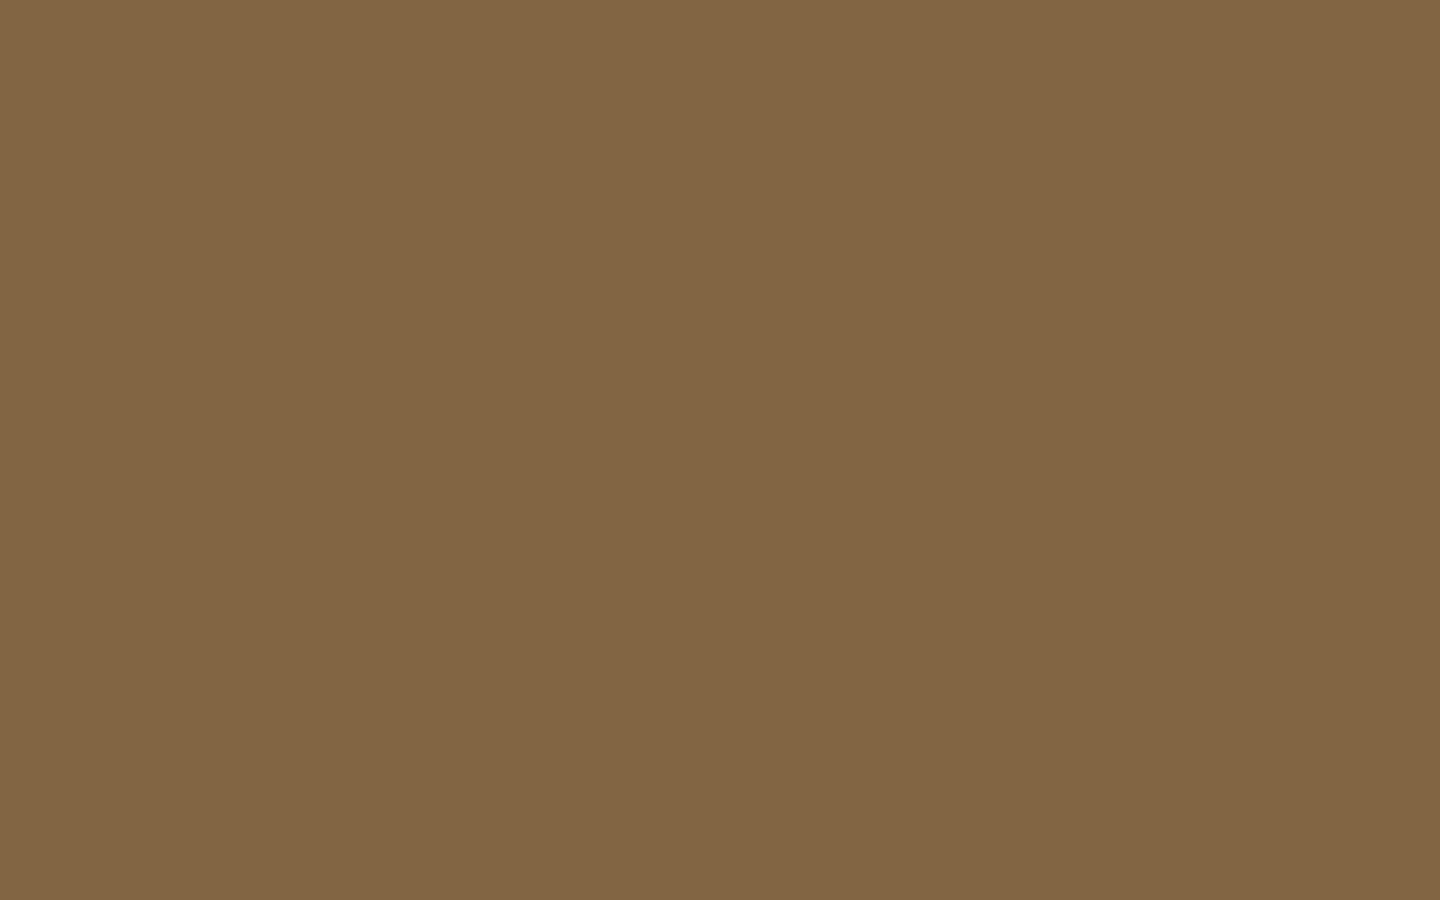 Raw Umber Solid Color Background